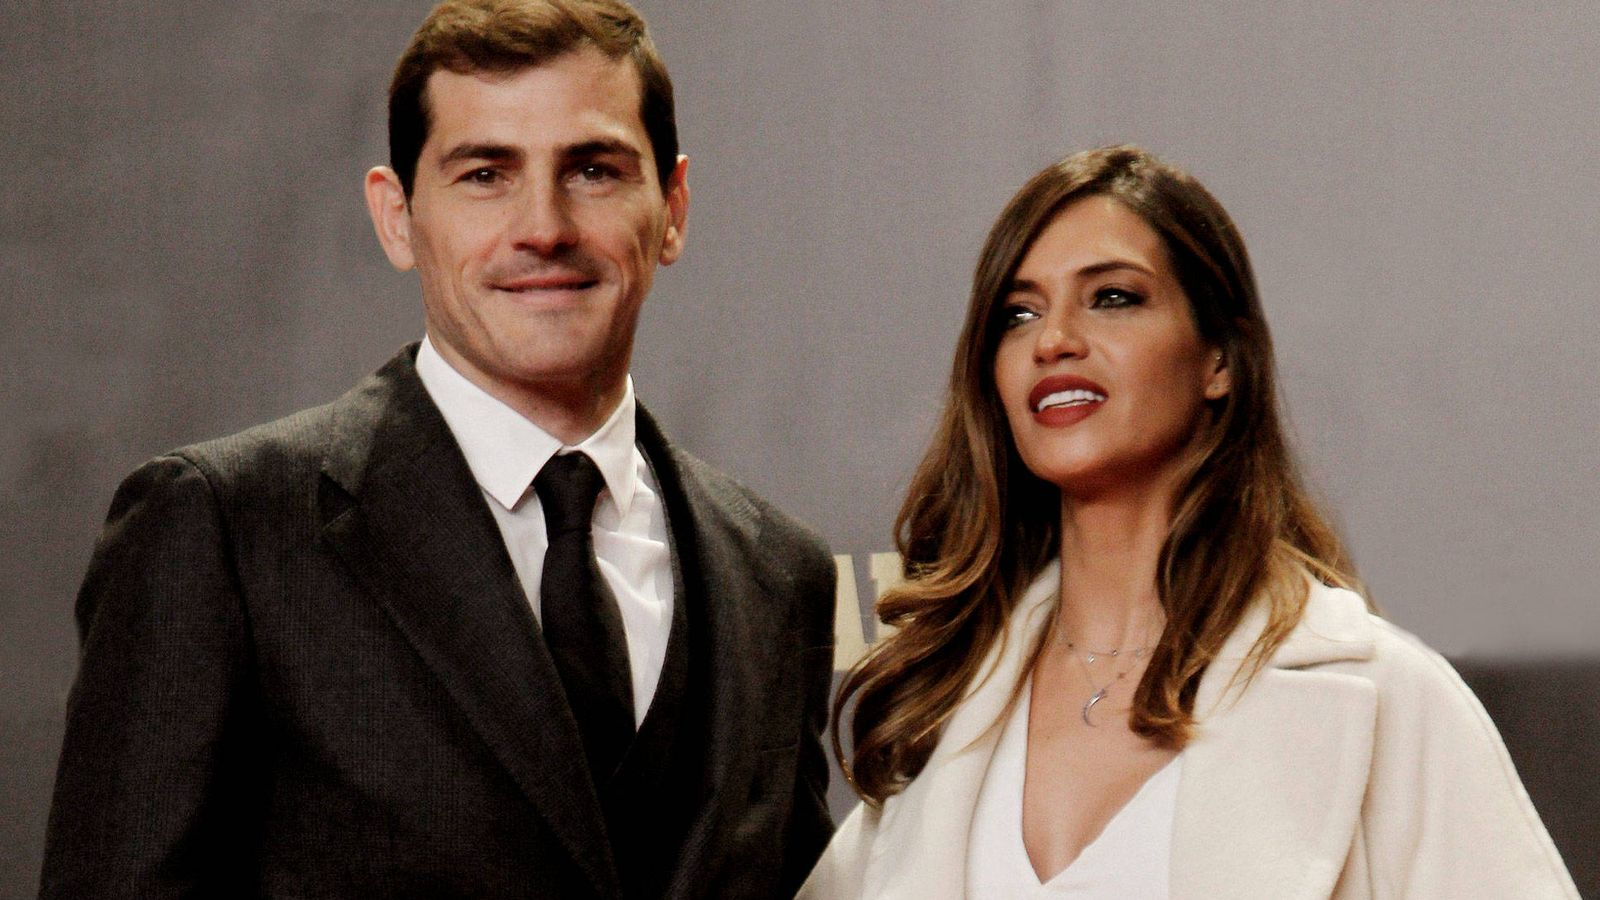 Foto: Iker Casillas y Sara Carbonero. (Cordon Press)